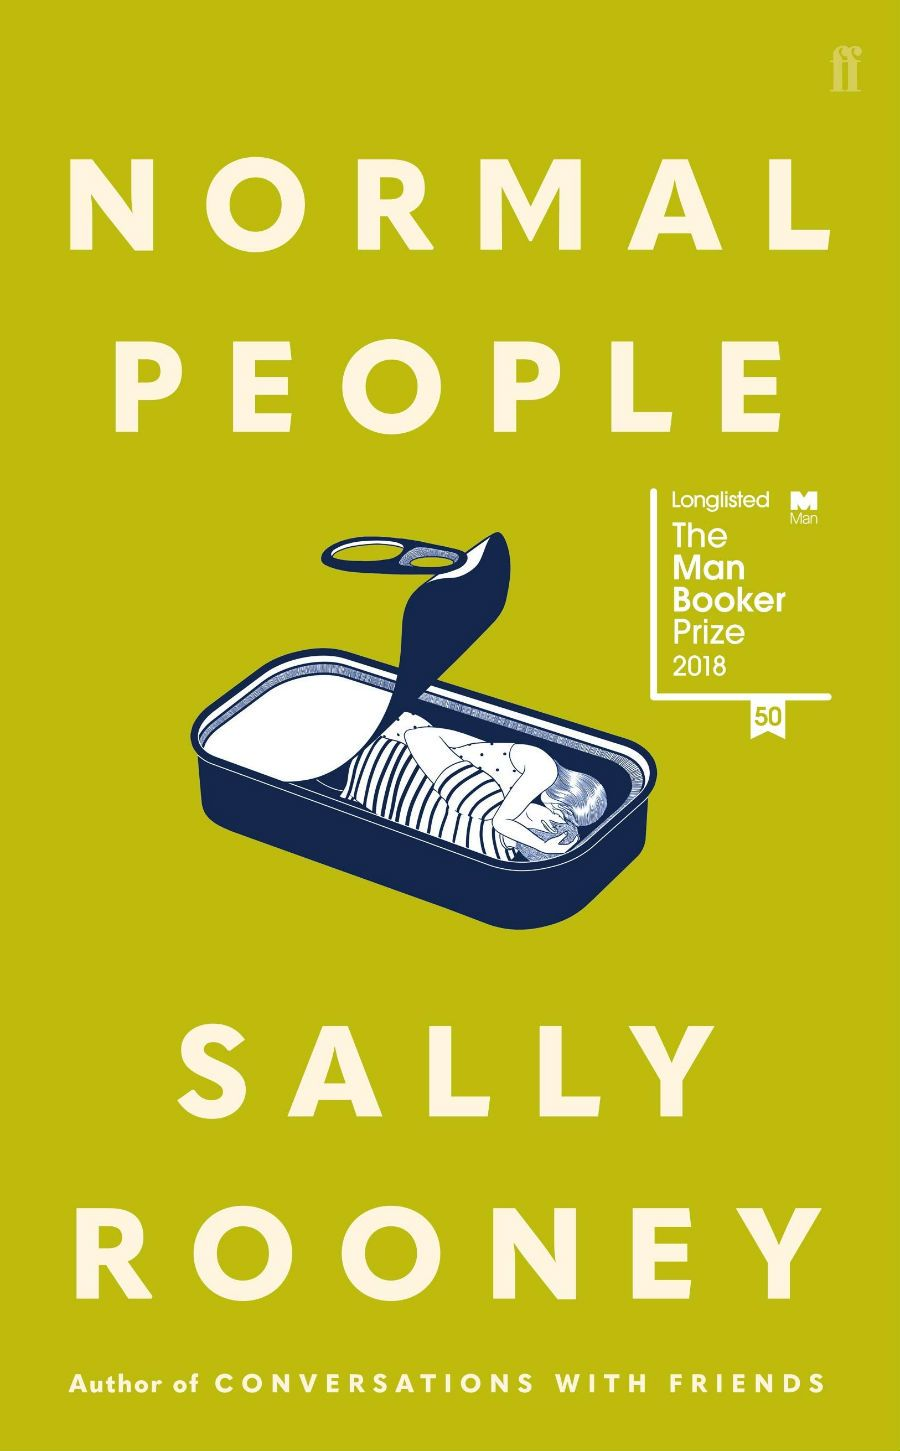 Book cover for Normal People, by Sally Rooney